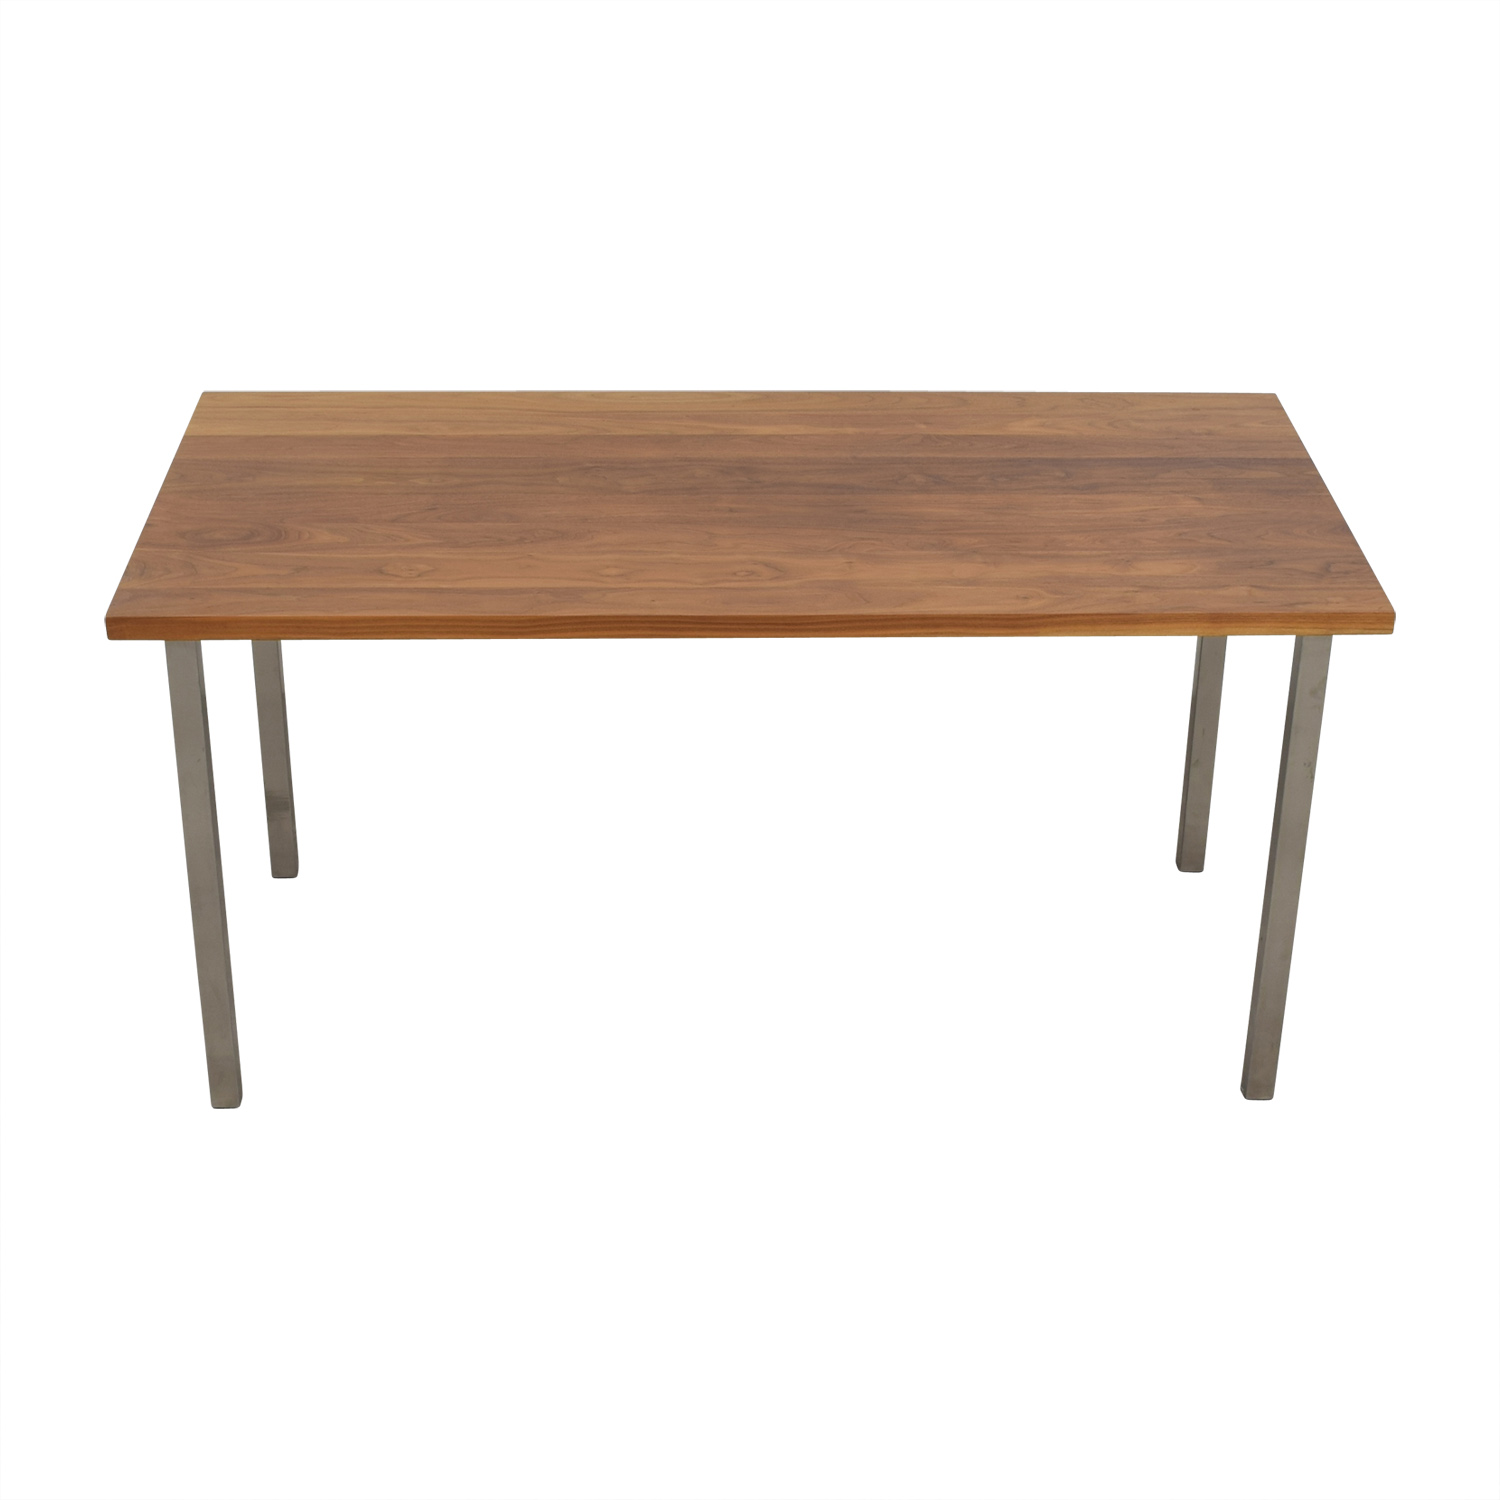 Room and Board Room & Board Portica Walnut Table price